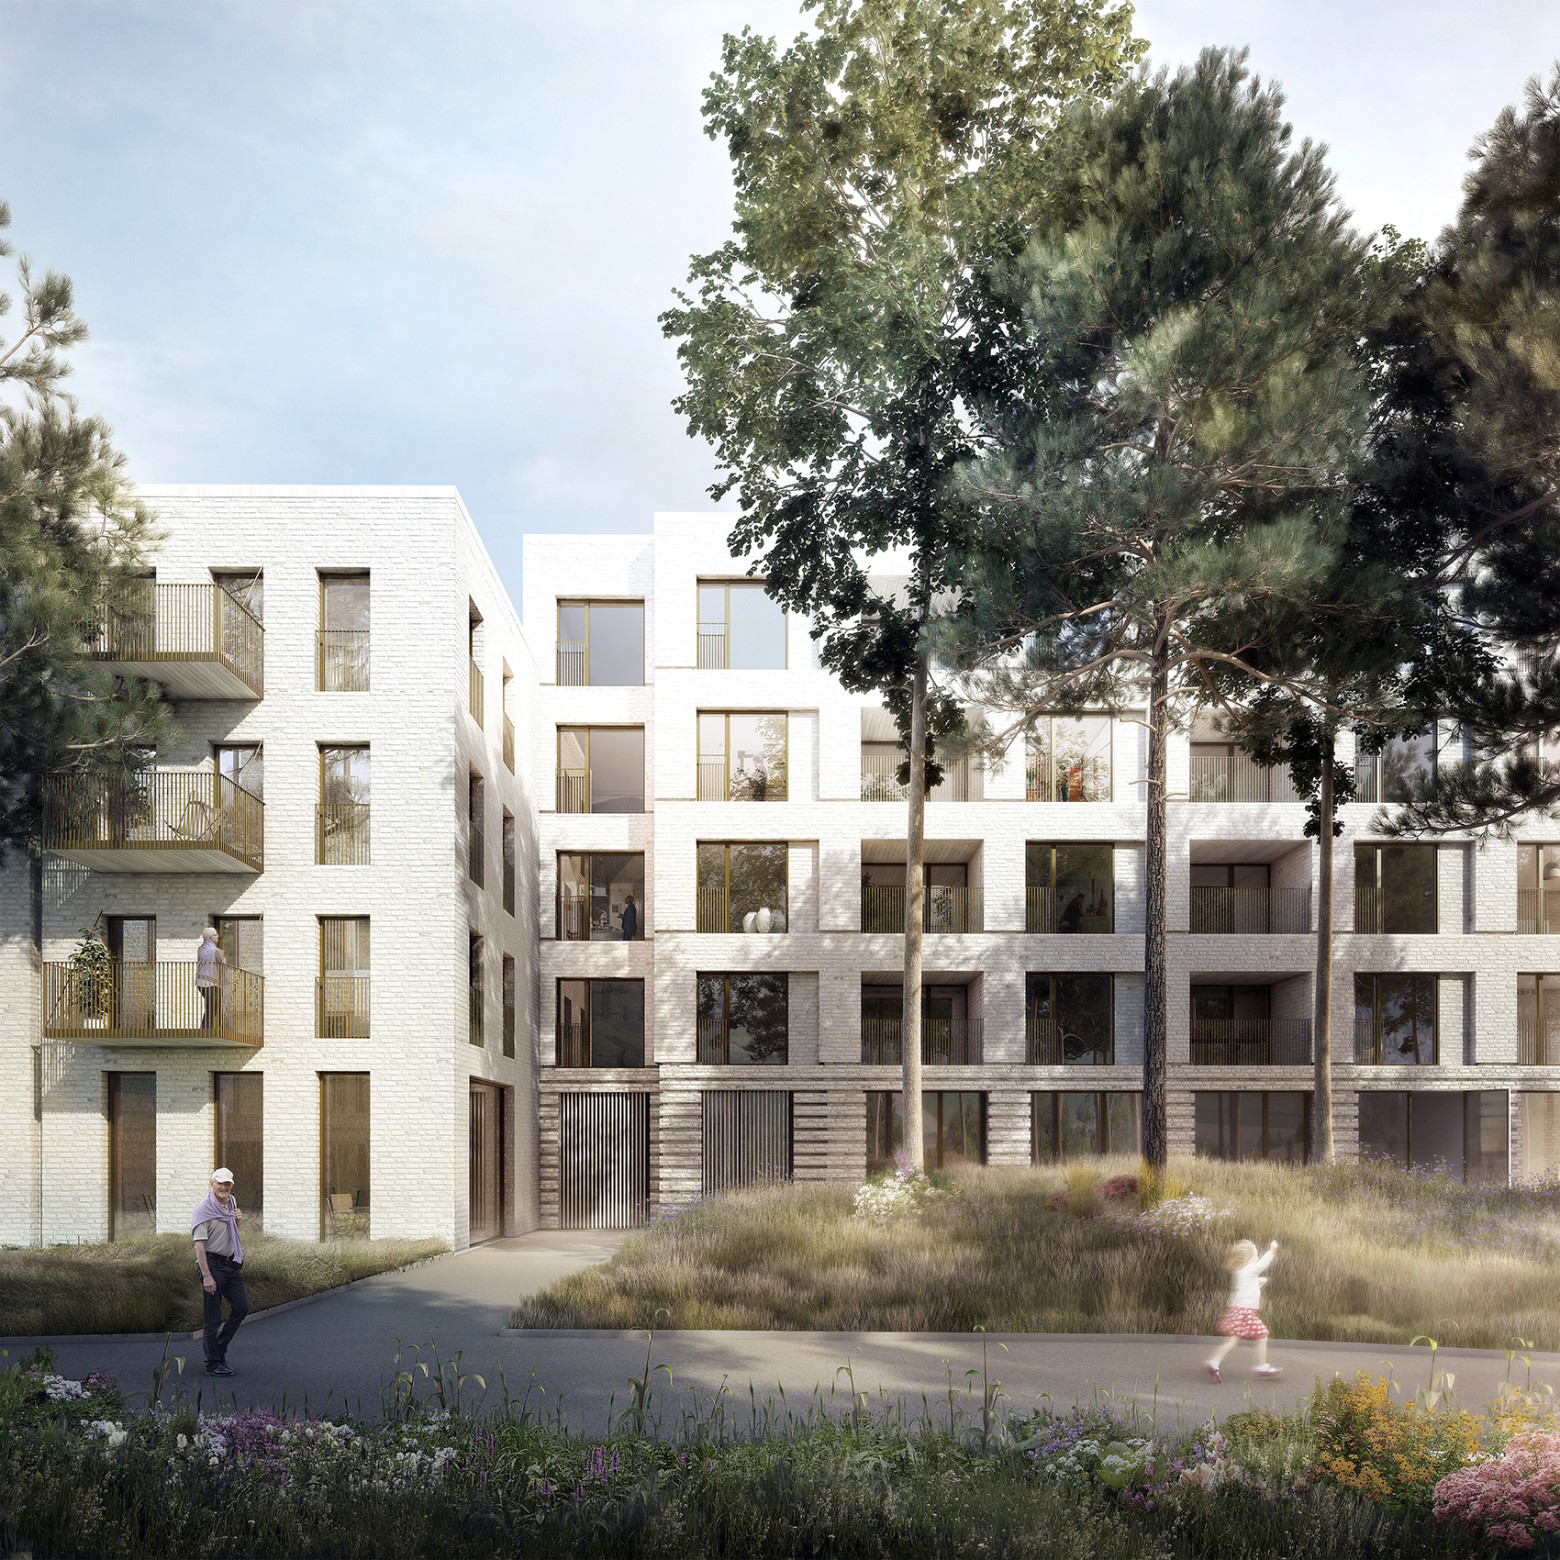 Marina Gardens planning consent granted